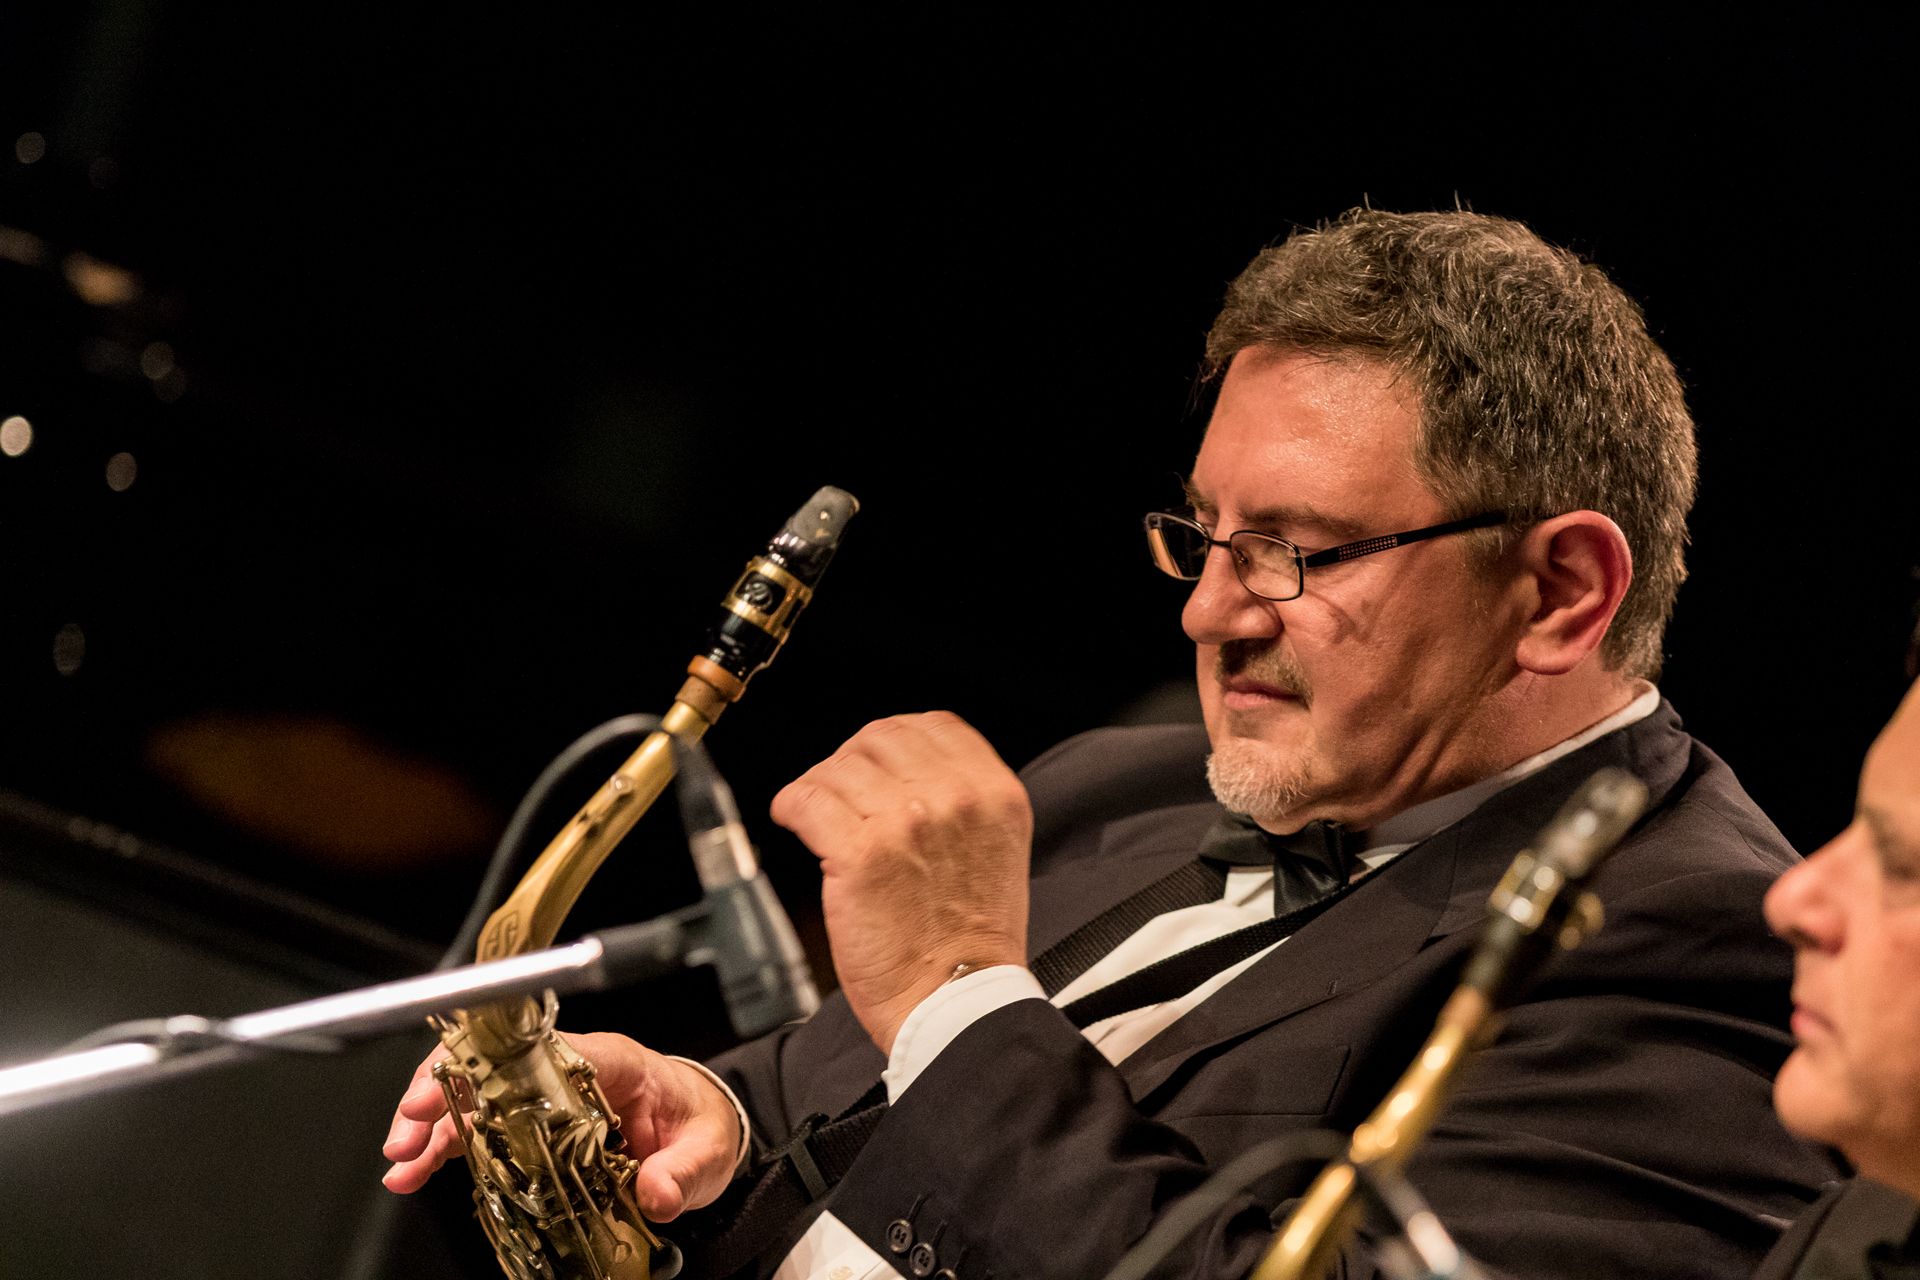 2016_10_15_Nick_Orchestra_Blue_Note_210310_7D2_4947